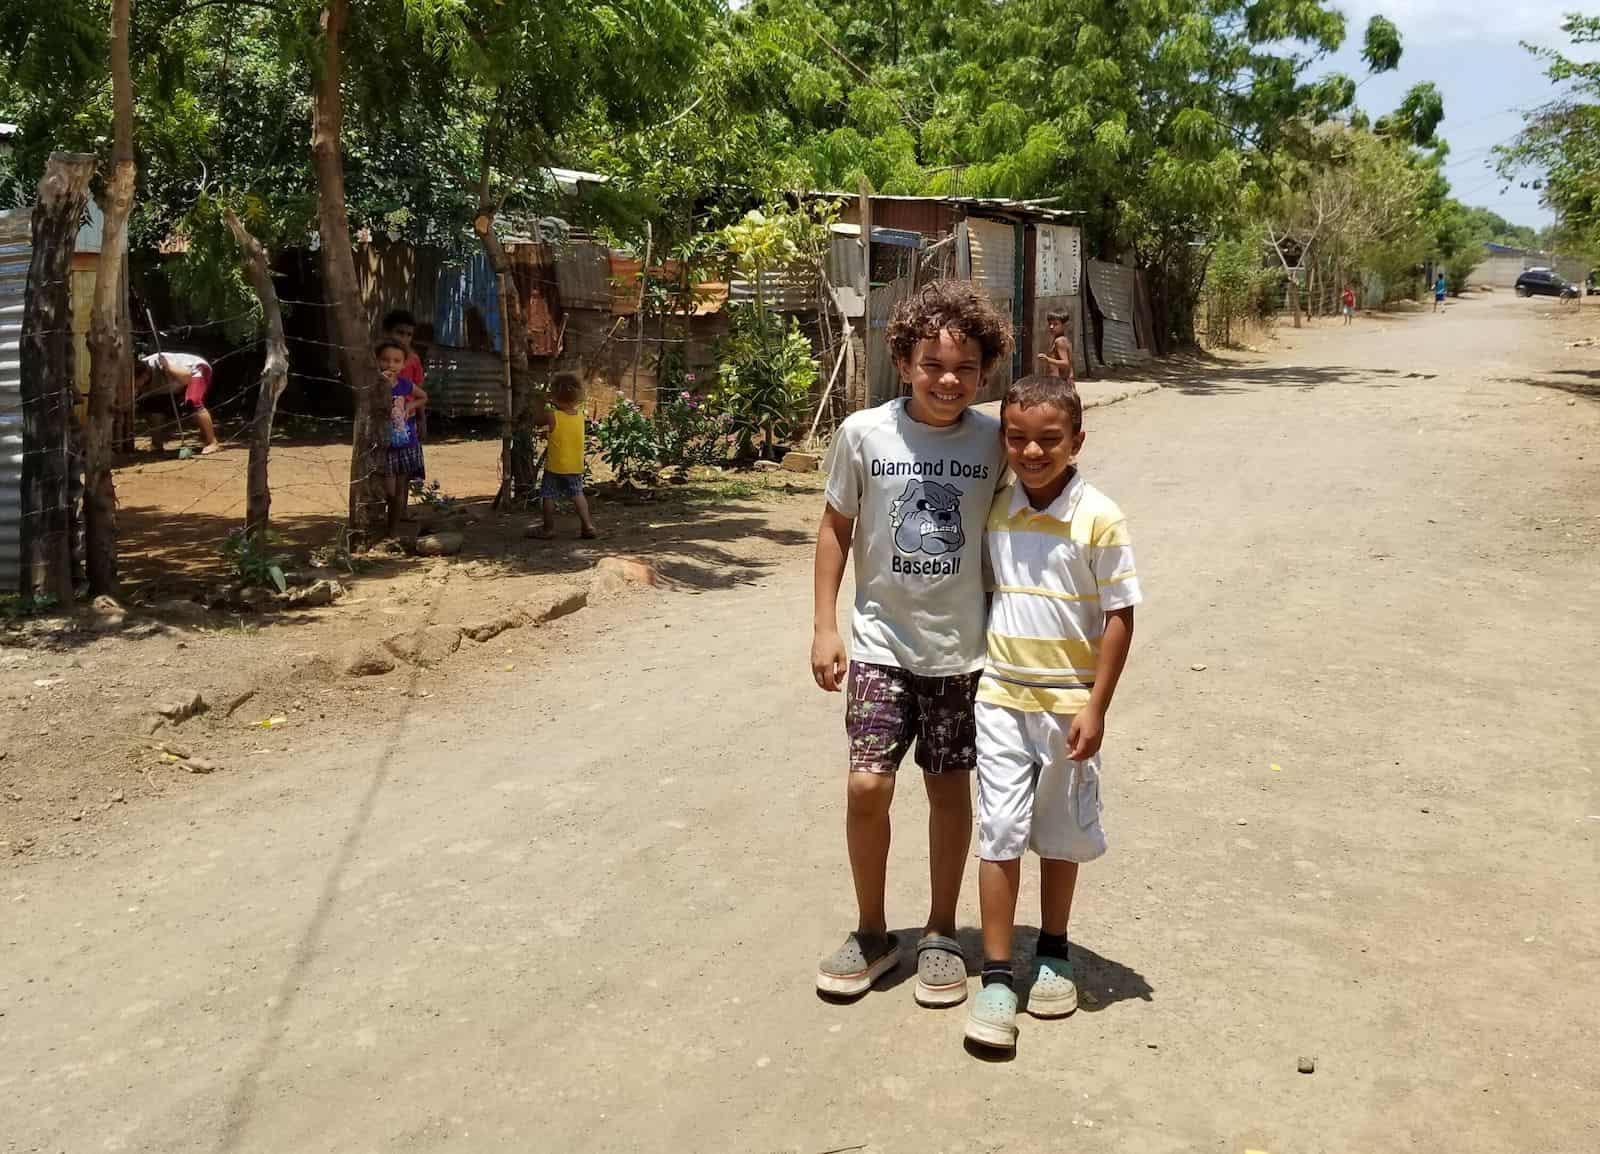 Two boys stand on a dirt road in Nicaragua.